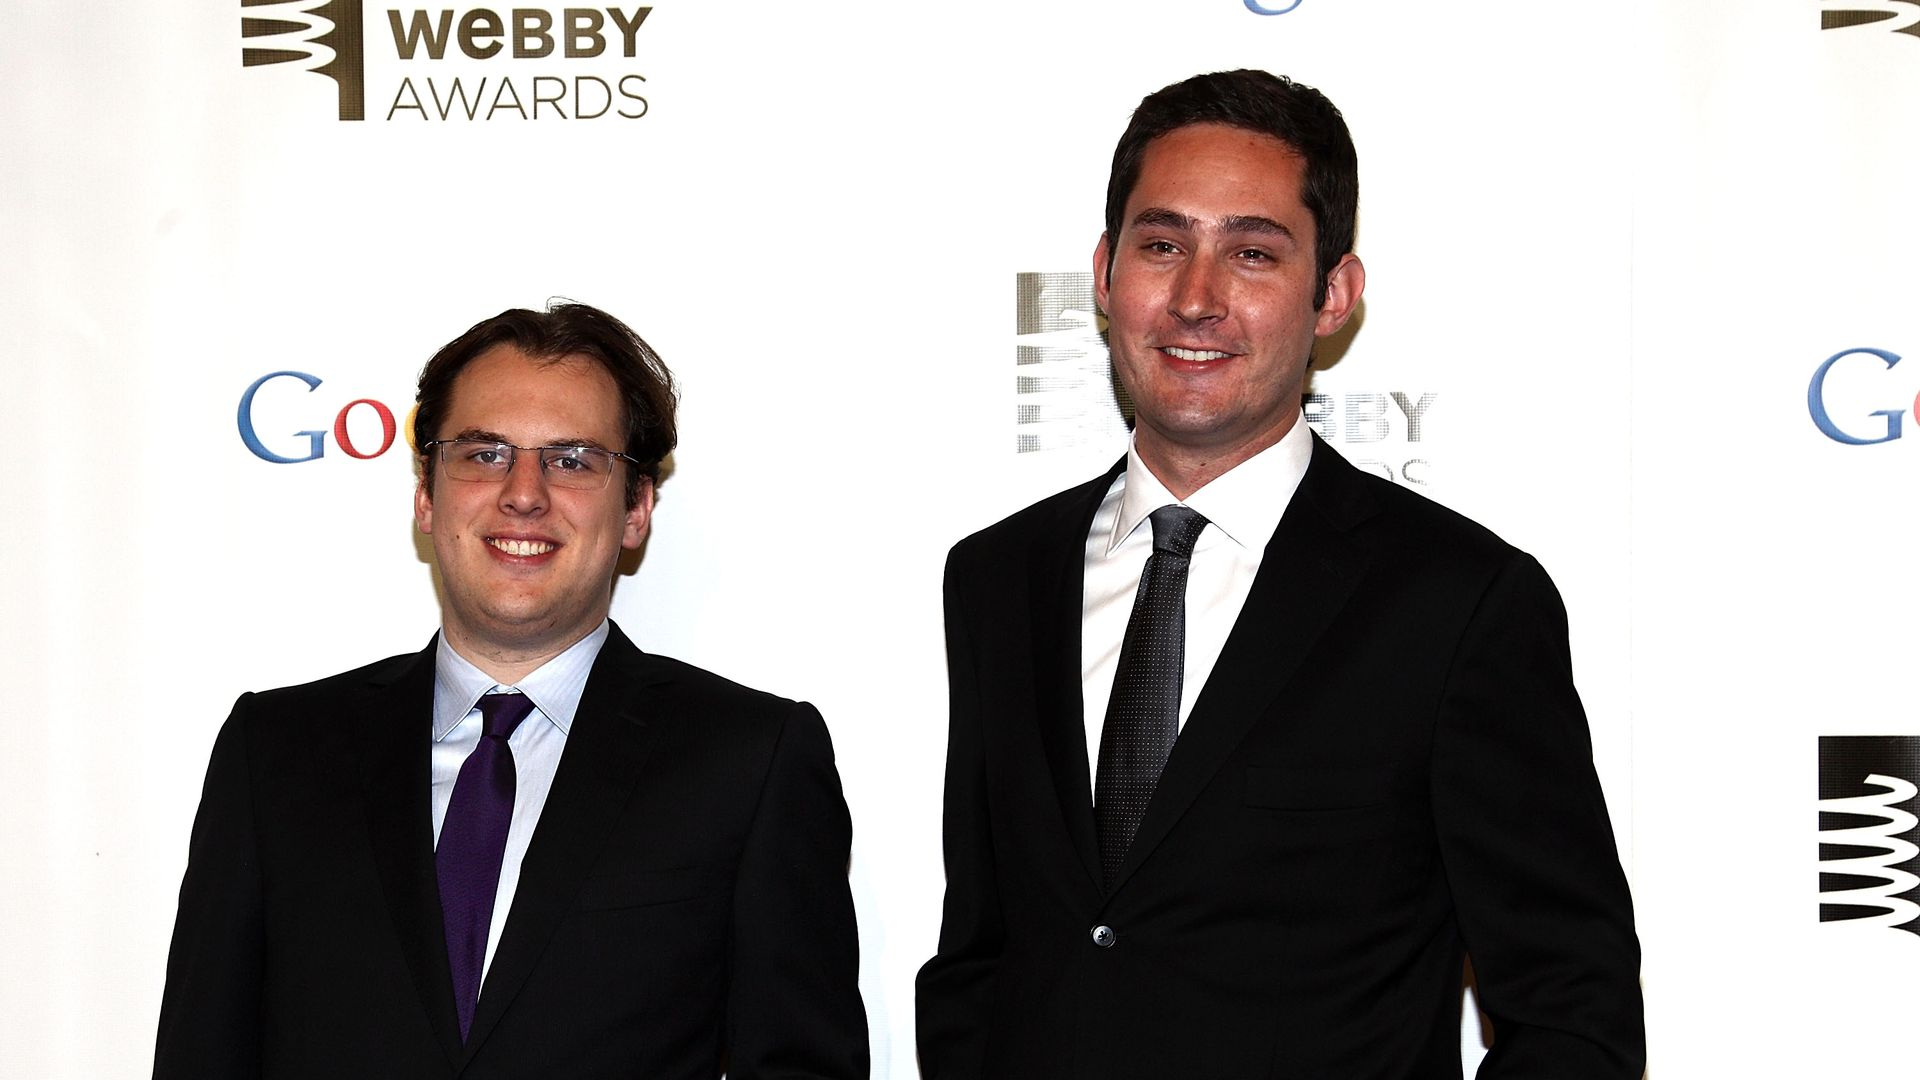 Instagram co-founders Kevin Systrom and Mike Krieger pose at for a photo at an event